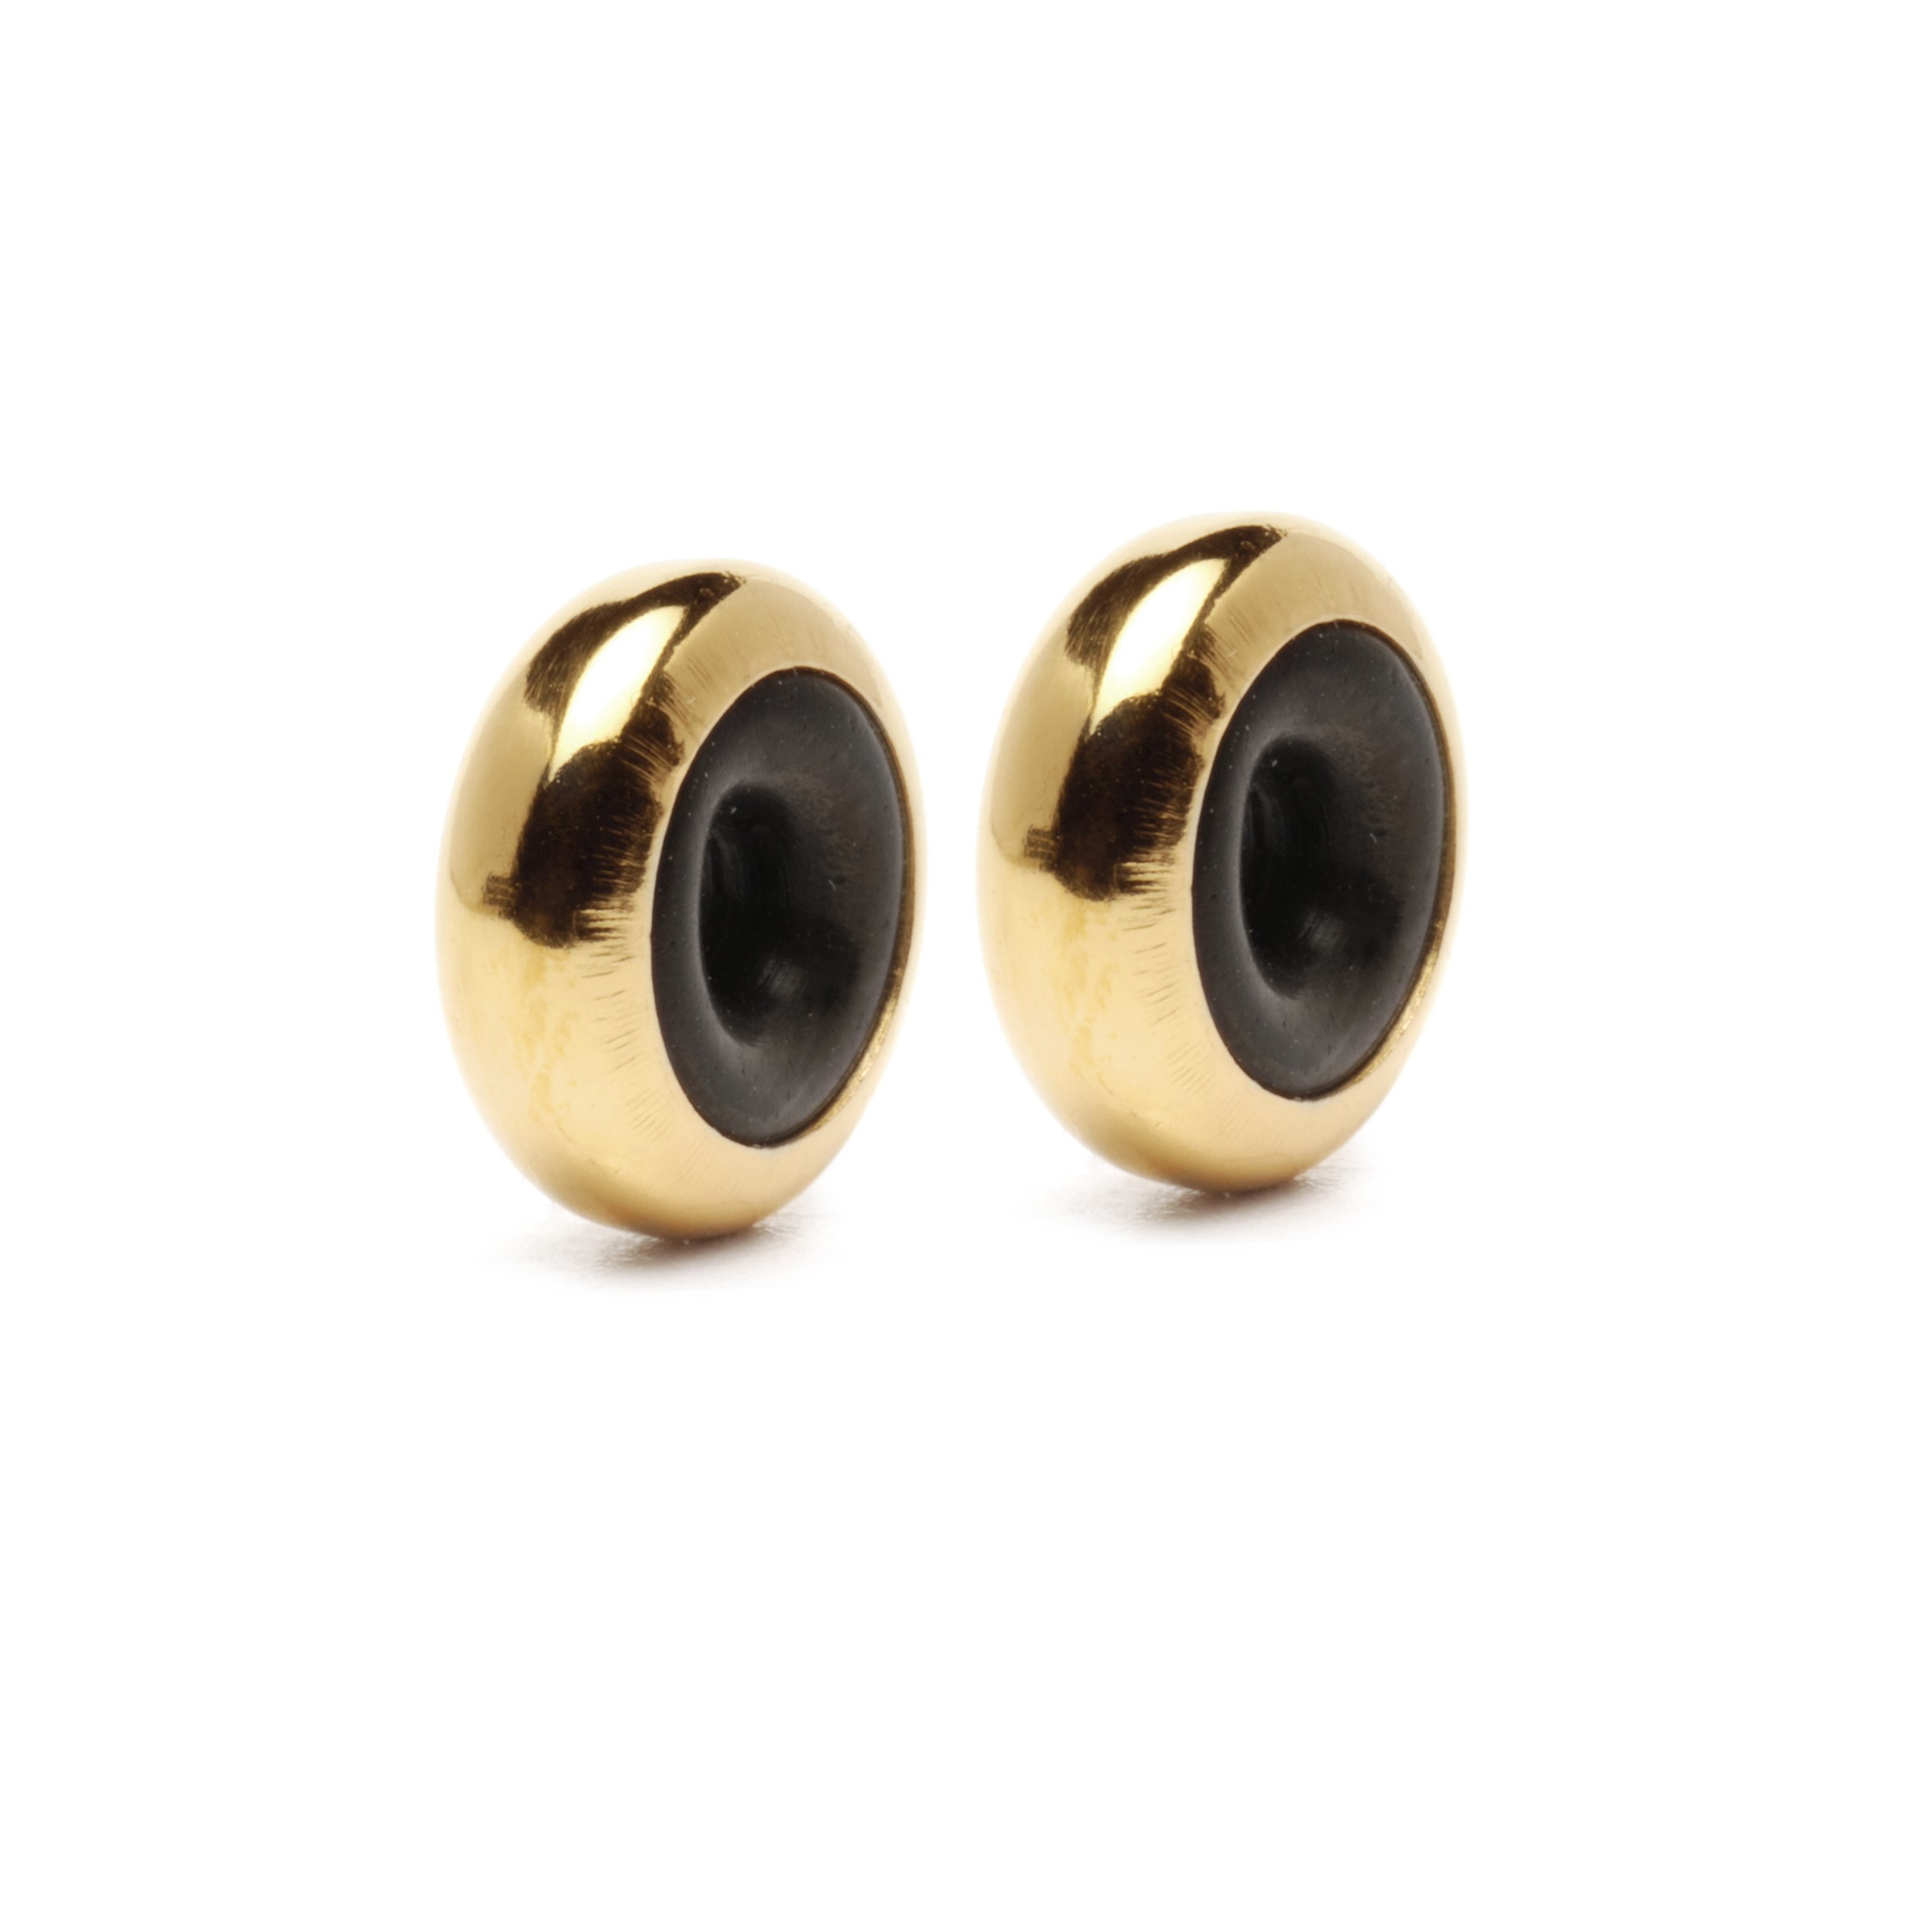 Gold-Spacer (2 pcs.)